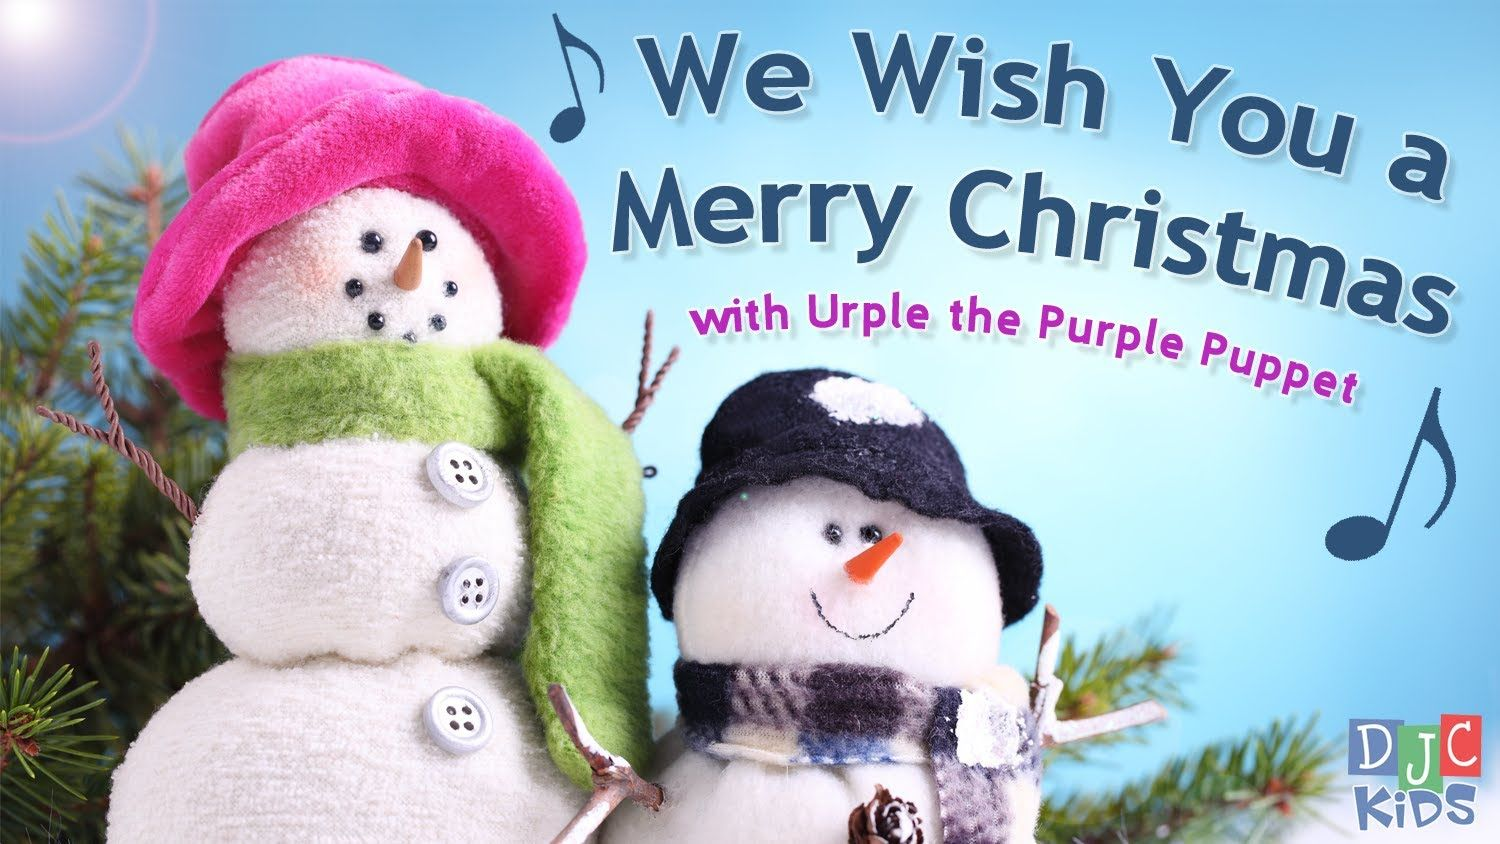 We Wish You A Merry Christmas With Urple The Purple Puppet Animated Christmas Wallpaper Christmas Stickers Animated Christmas